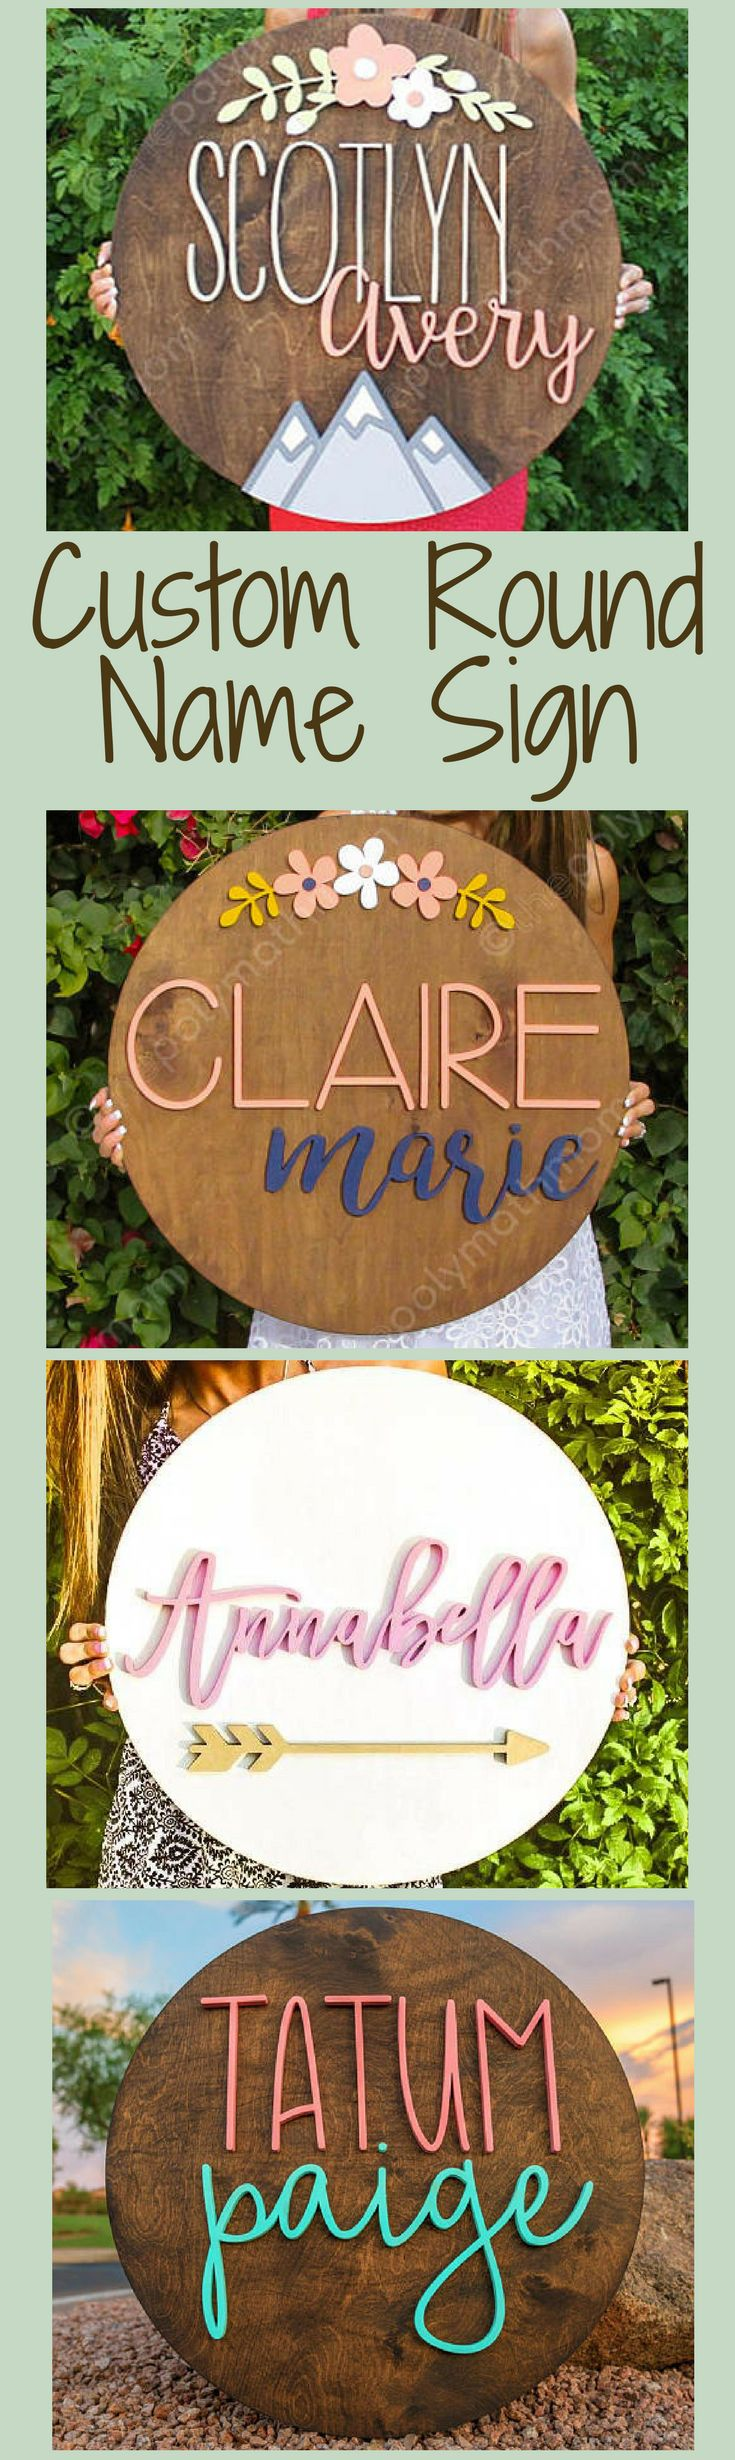 These name signs are so individualized! The cut out names and decorations are amazing! Cut Out Name Signs - Floral Arch, Mountain Scene, Round Custom Name Wood Sign, Rustic Nursery Decor, Farmhouse Nursery, Fixer Upper Sign, Family Name Sign, Baby Shower Gift Idea, Housewarming Gift Idea, Modern Girl's Nursery, Family Room Decor, Custom Sign, Name Sign for Gallery Wall, Laser Cut Name, Farmhouse  Decor, Rustic Decor, Rustic Farmhouse, Fixer Upper Decor #ad